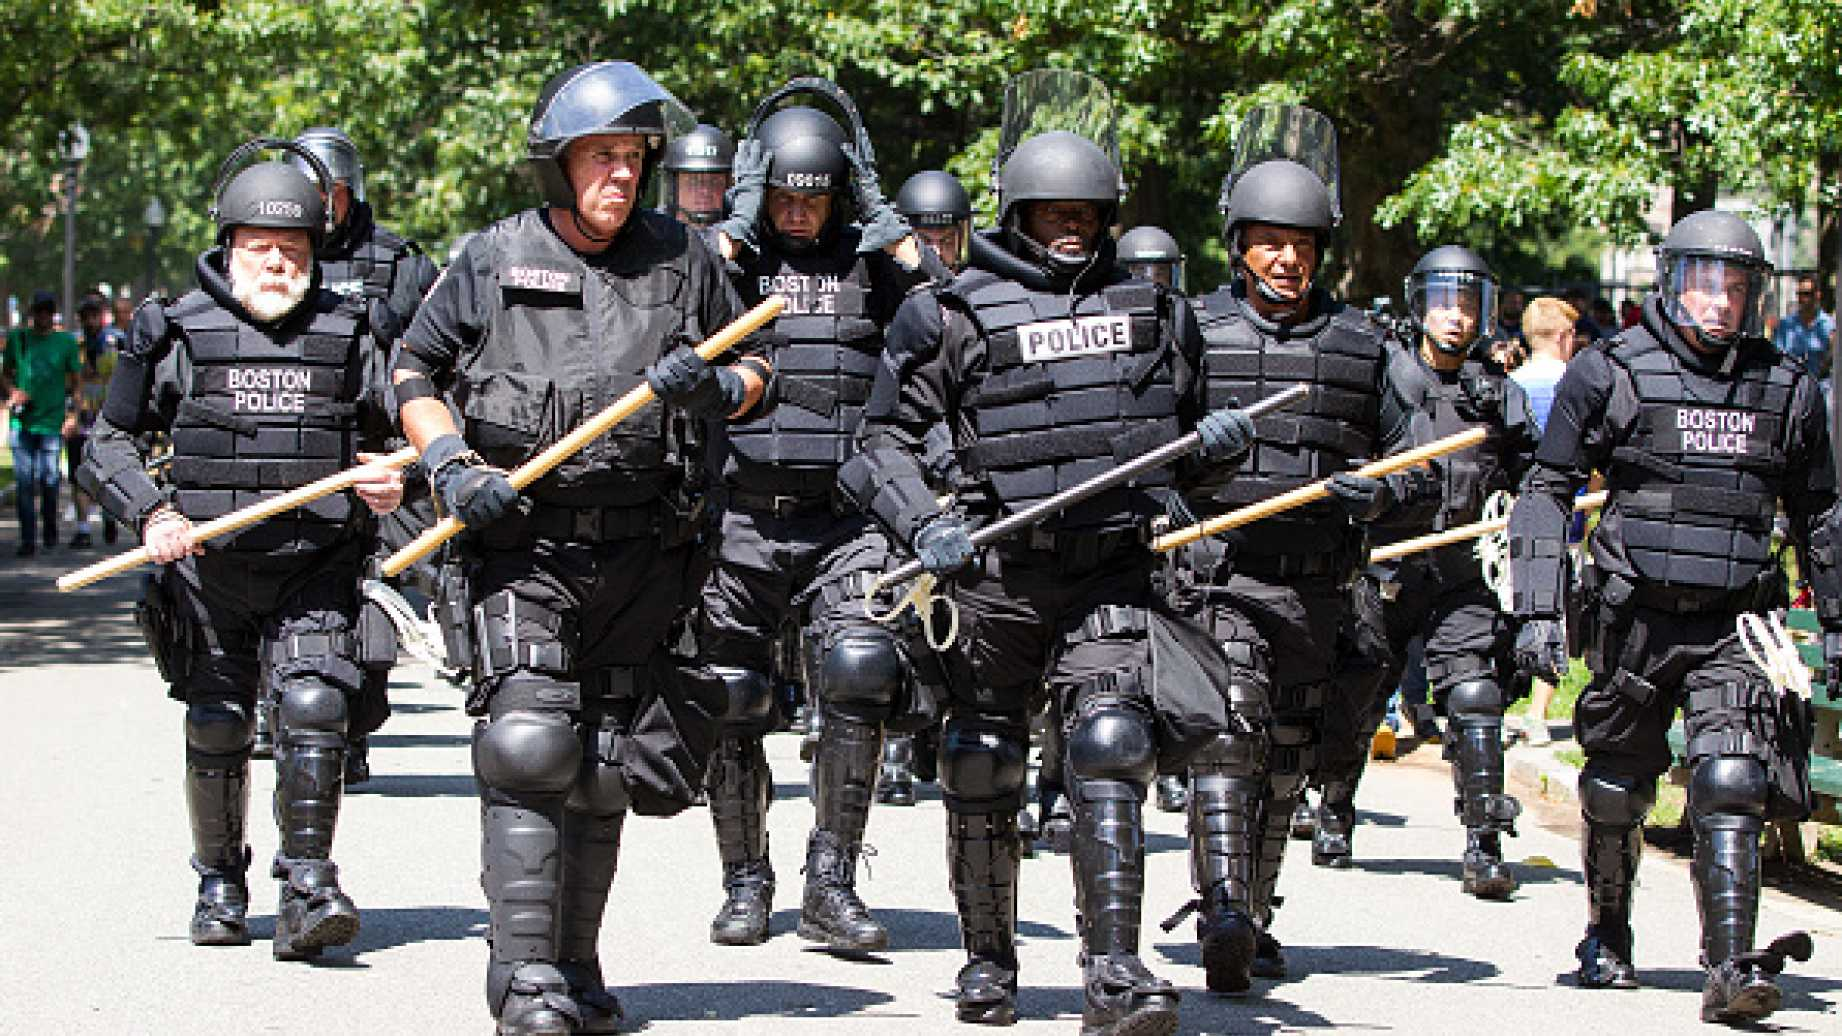 Militarized police in riot gear